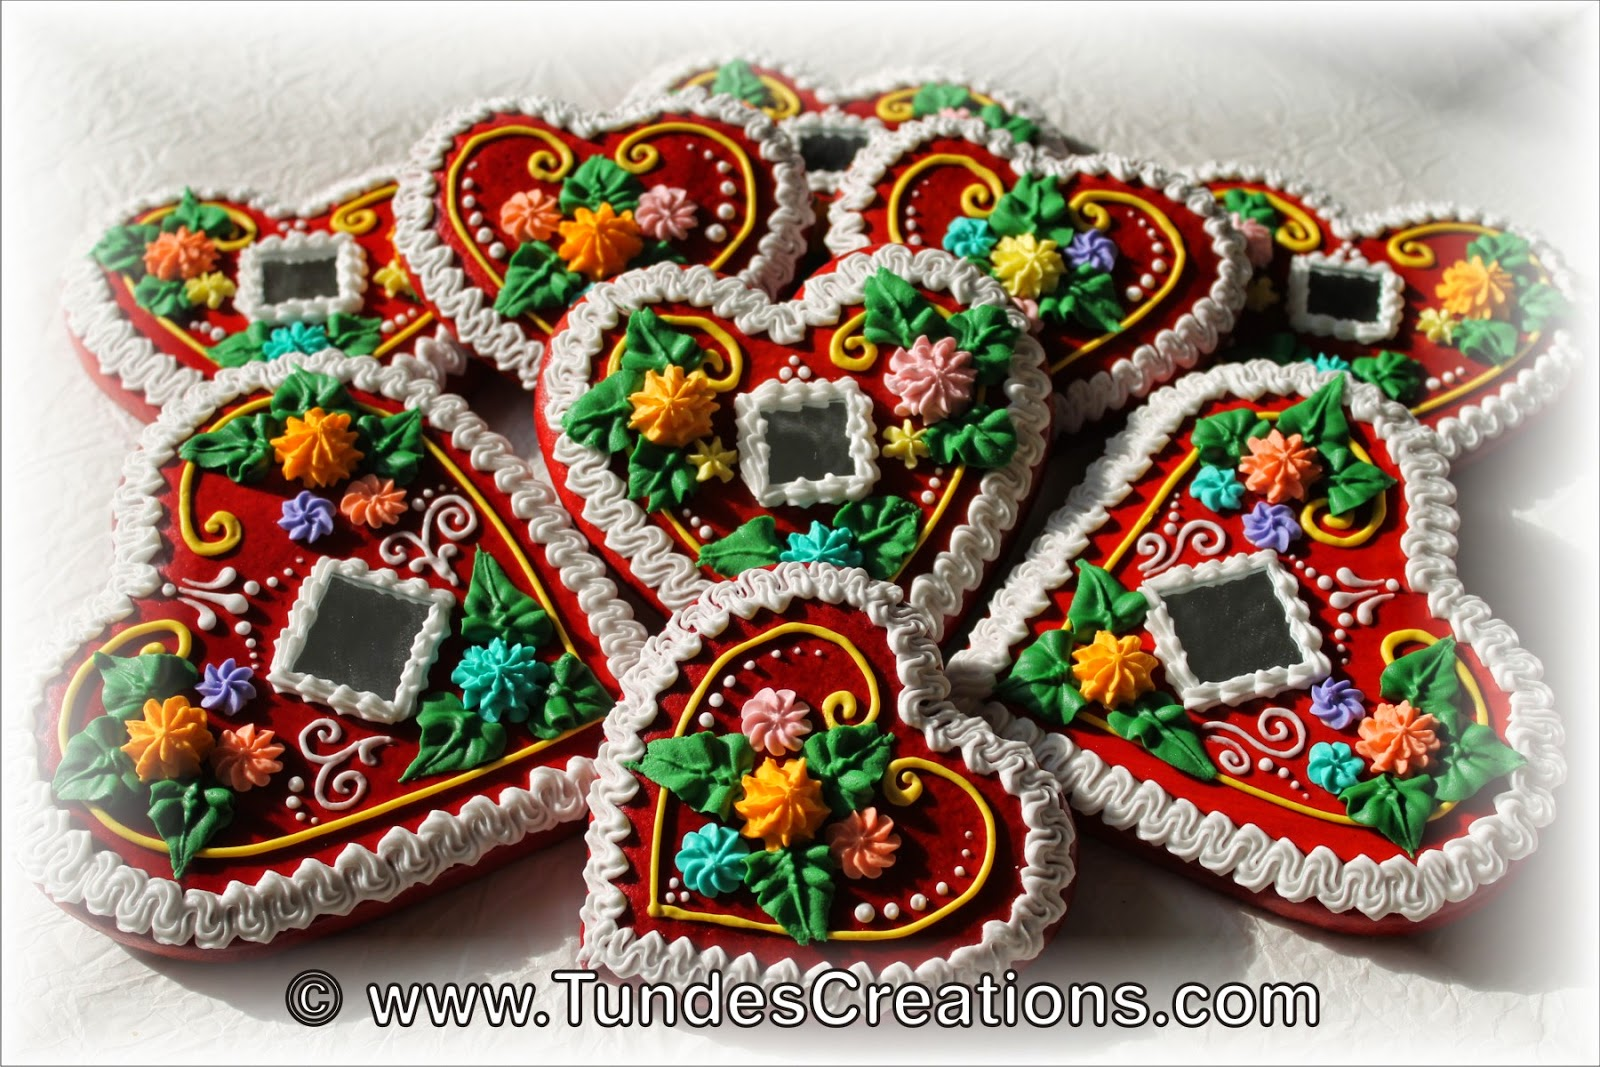 The Gingerbread Artist Traditional Hungarian Red Gingerbread Hearts